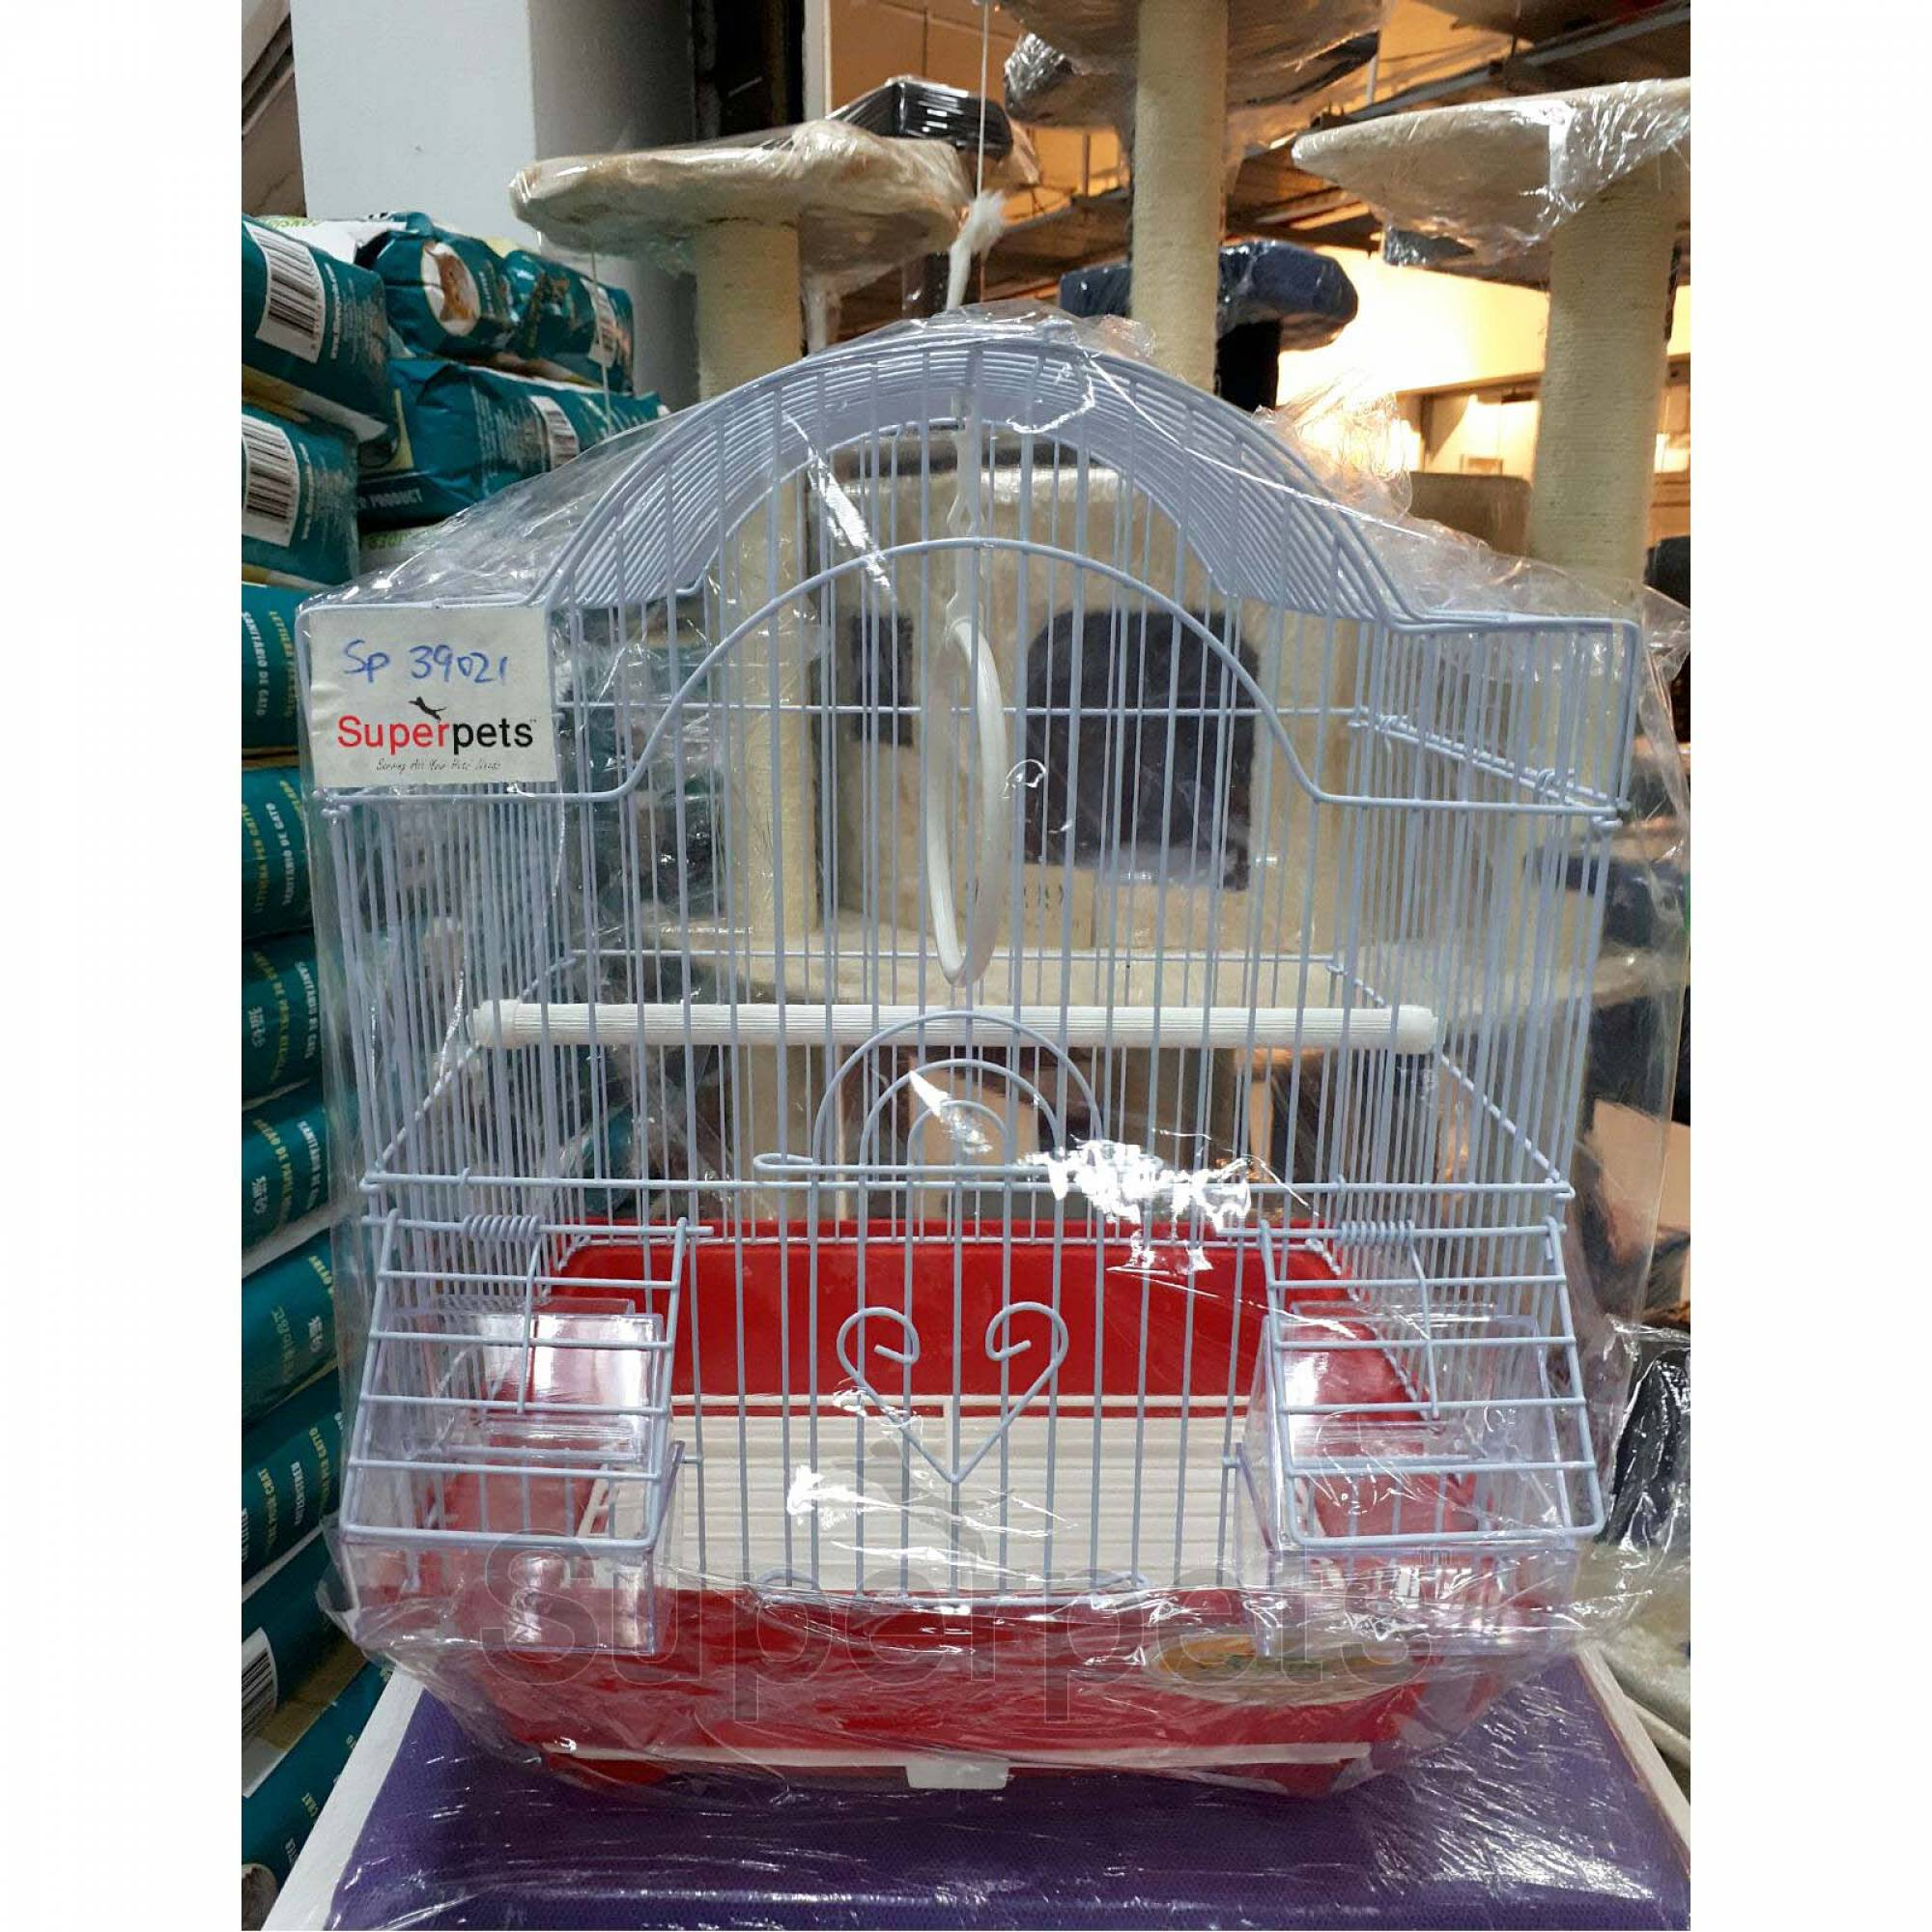 OPSP39021 Bird Cage - Red